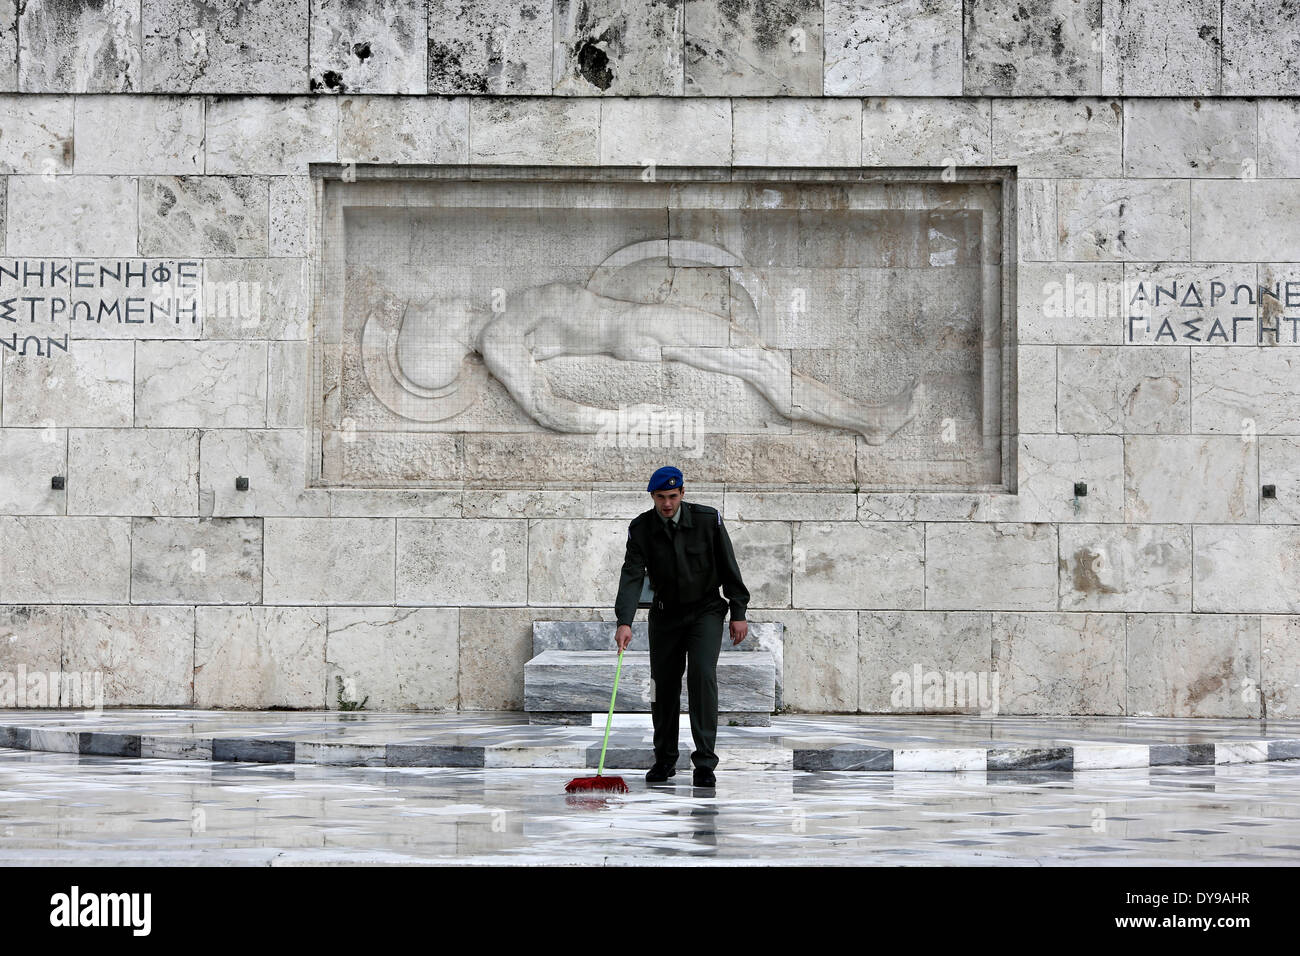 Athens, Greece. 10th Apr, 2014. A Greek soldier wipes the rainwater in front of the monument of the Unknown Soldier in Syntagma Square. Evzones perform the Changing of the Guard Ceremony at the Tomb of the Unknown Soldier in Syntagma Square in Athens, Greece on April 10, 2014. Credit:  Konstantinos Tsakalidis/Alamy Live News - Stock Image